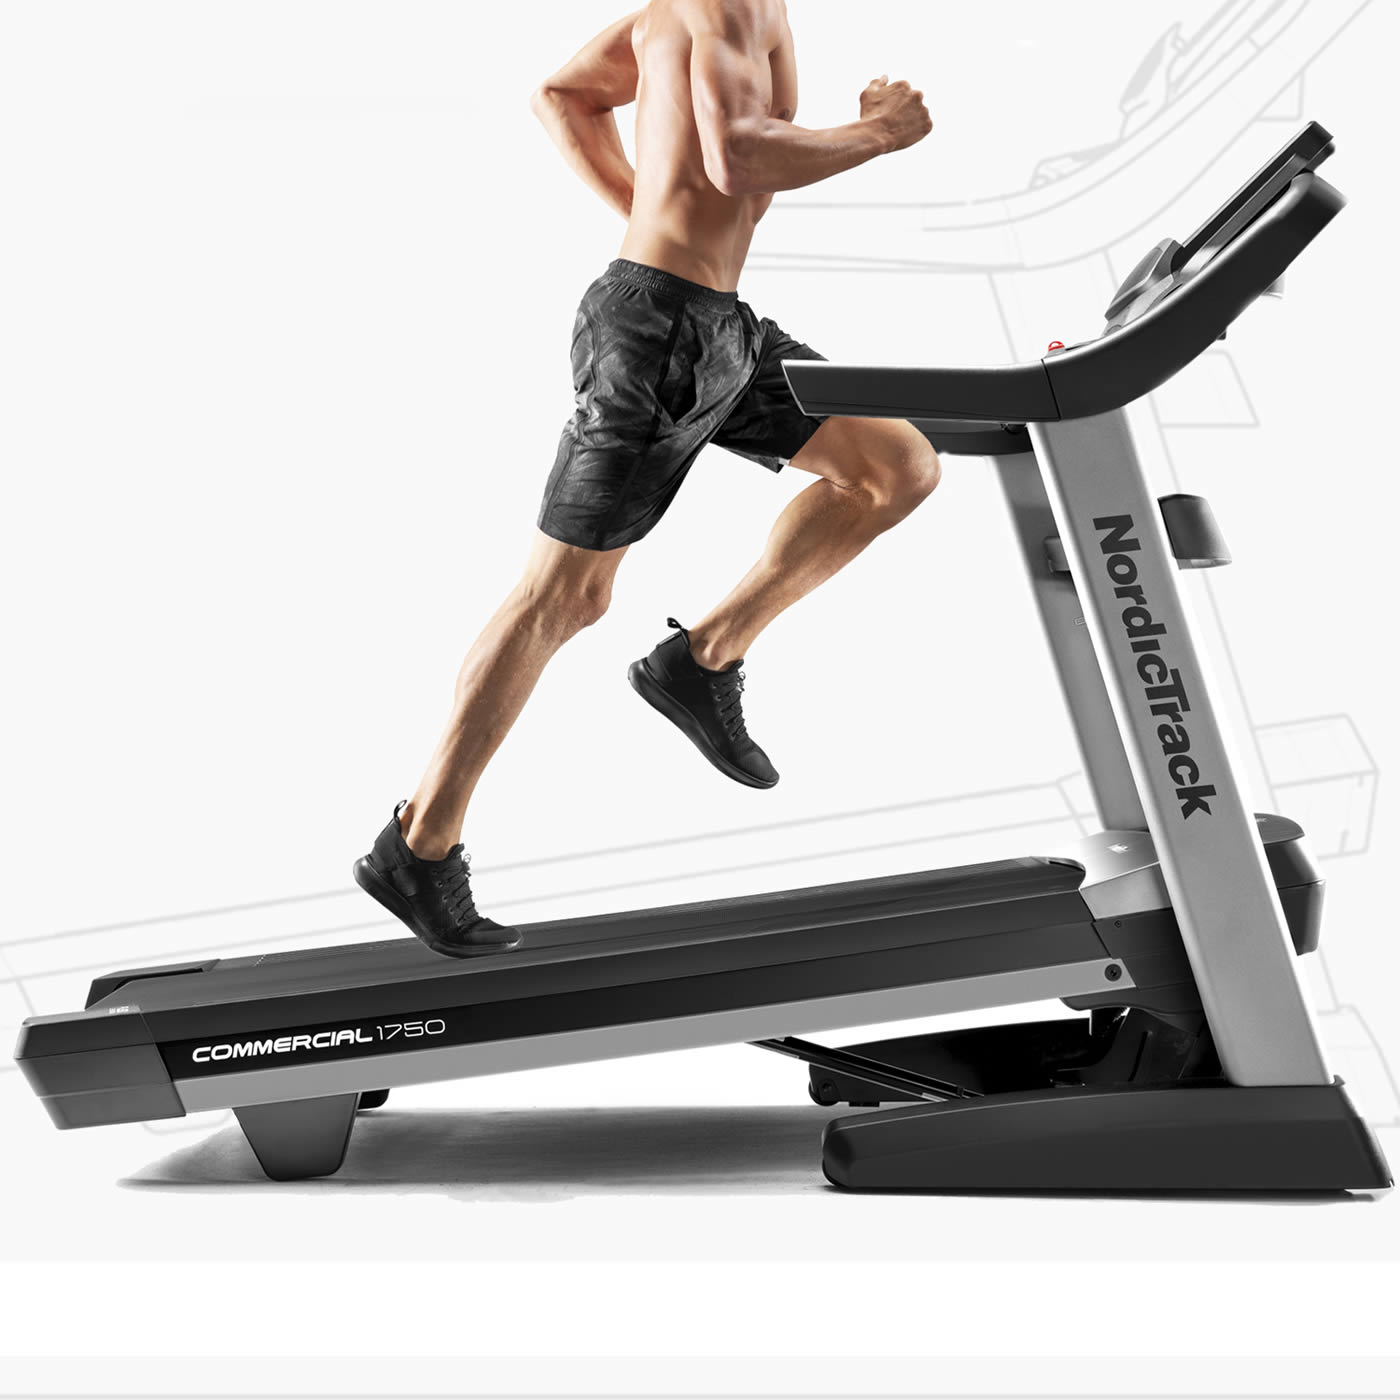 Nordictrack Commercial 1750  Treadmill Reviewed. Running or just walking at an incline will burn a lot more calories quicker with this durable tread